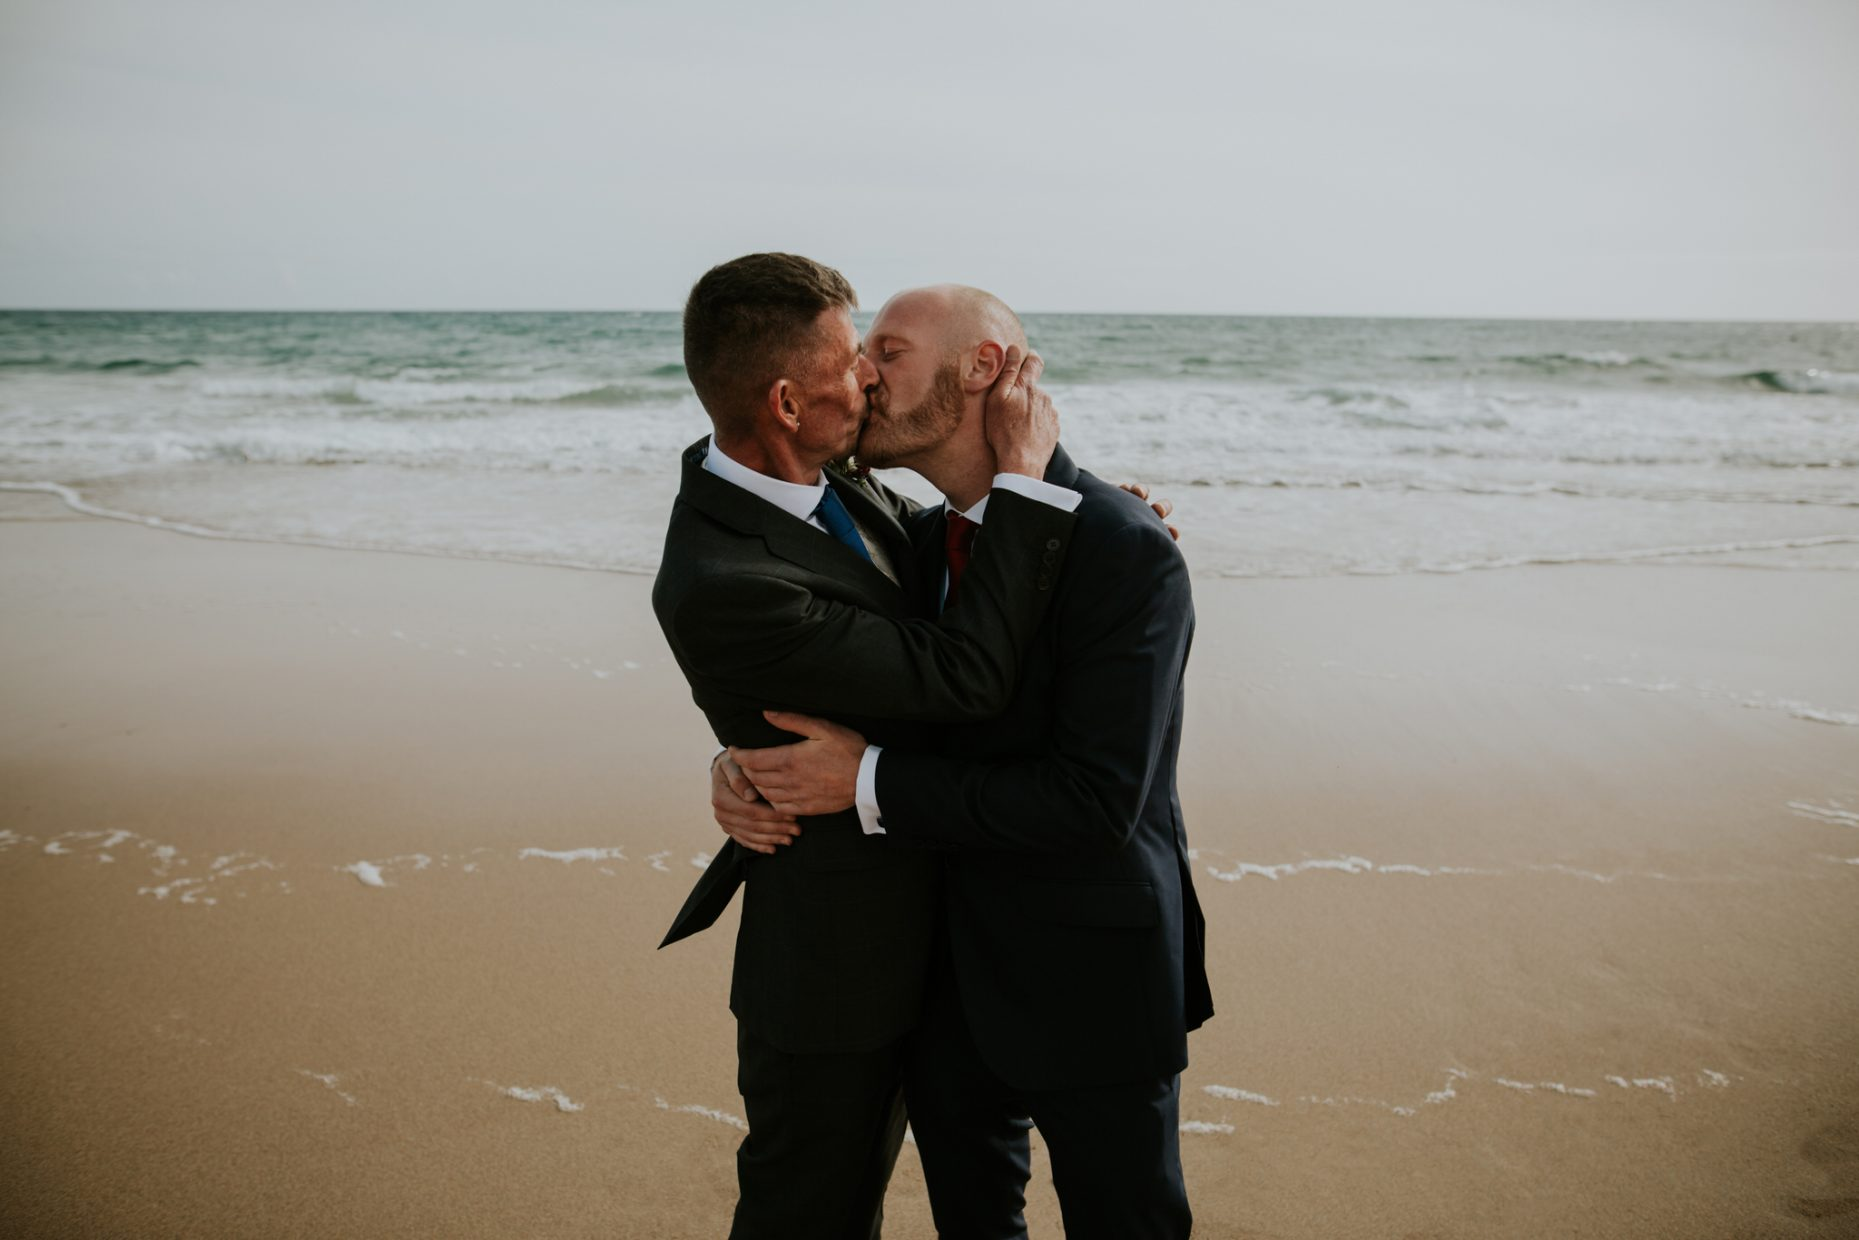 a same sex couple kiss and embrace passionately on the beach, putting their hands on each others faces